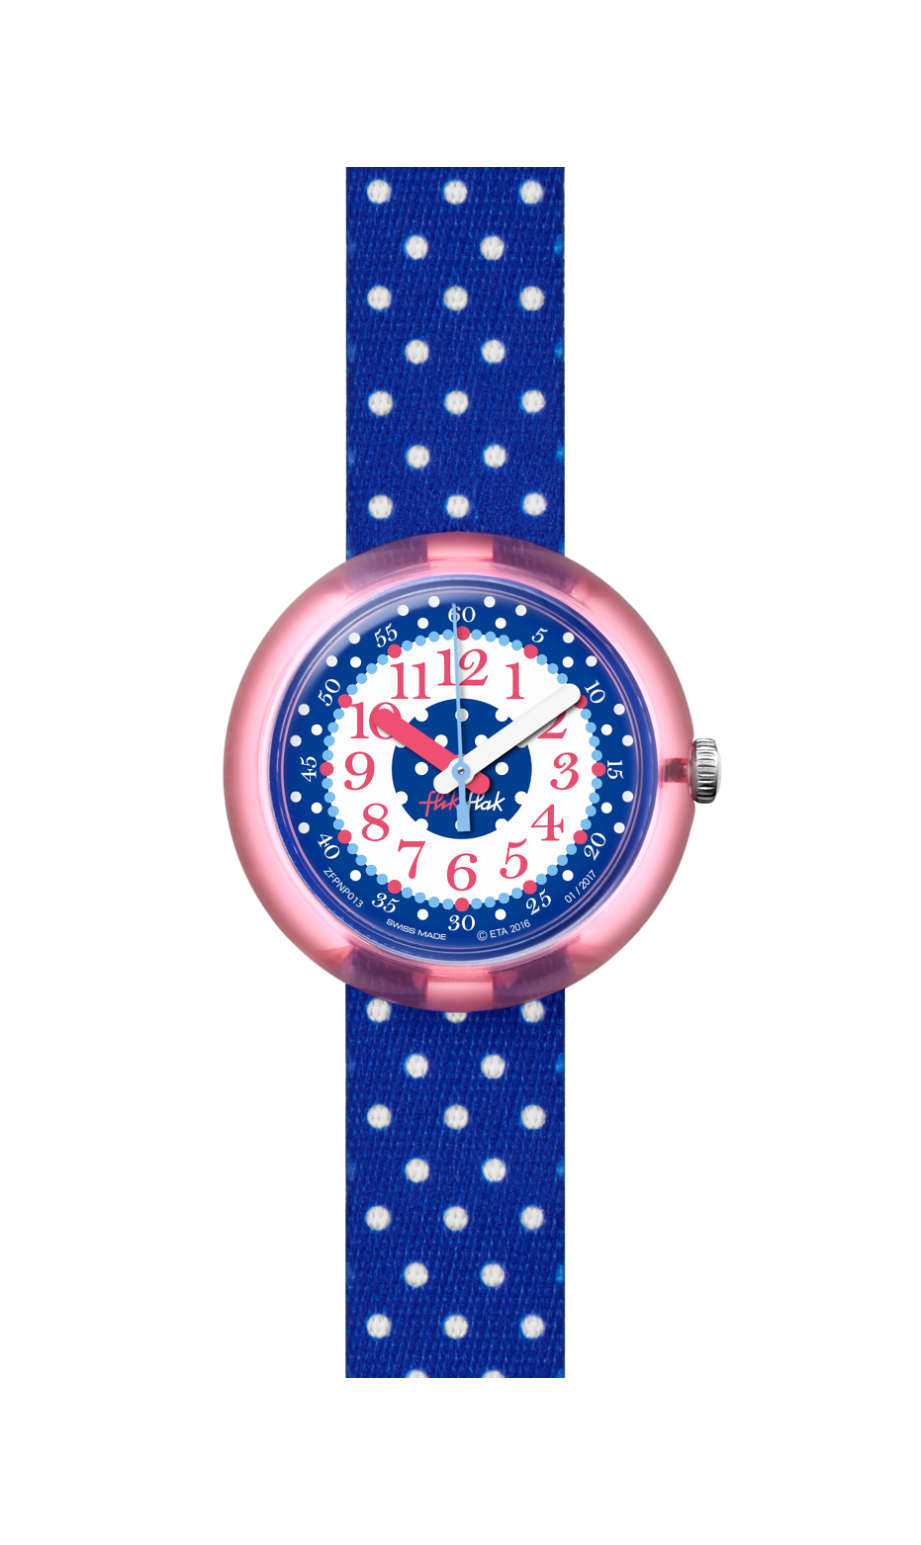 Swatch - BLUE CRUMBLE - 1